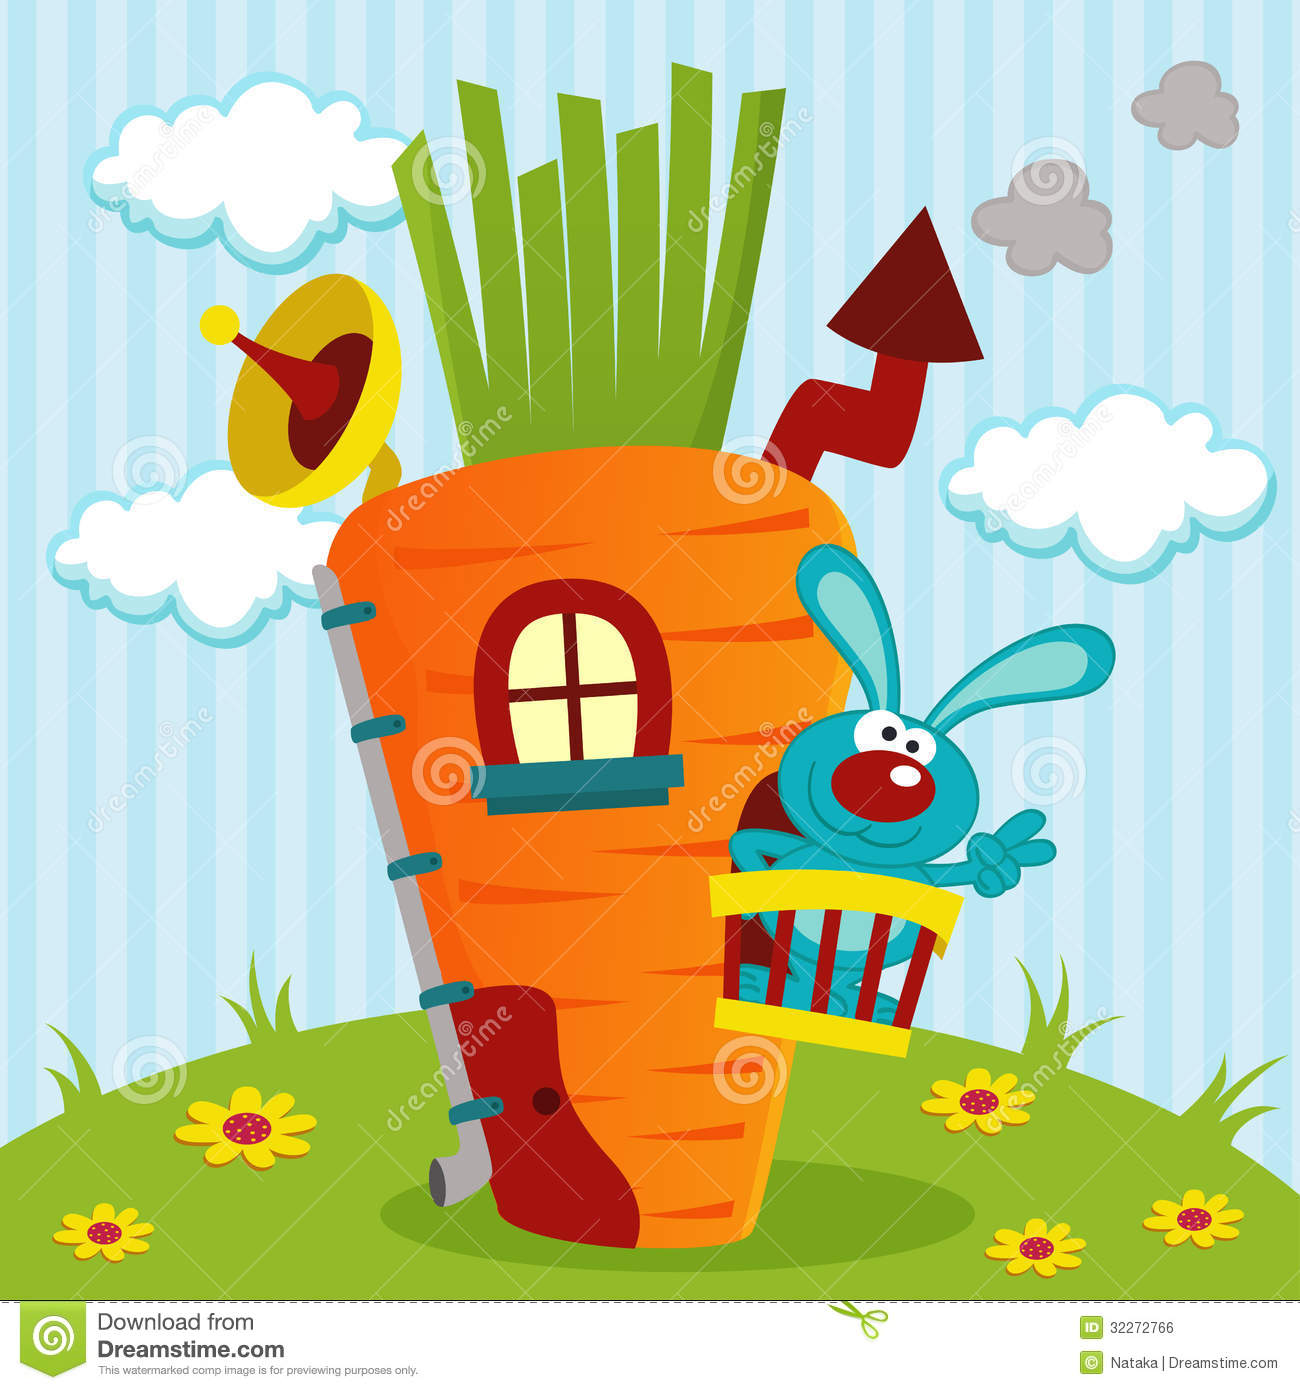 Rabbit In House Of Carrots Royalty Free Stock Image ...